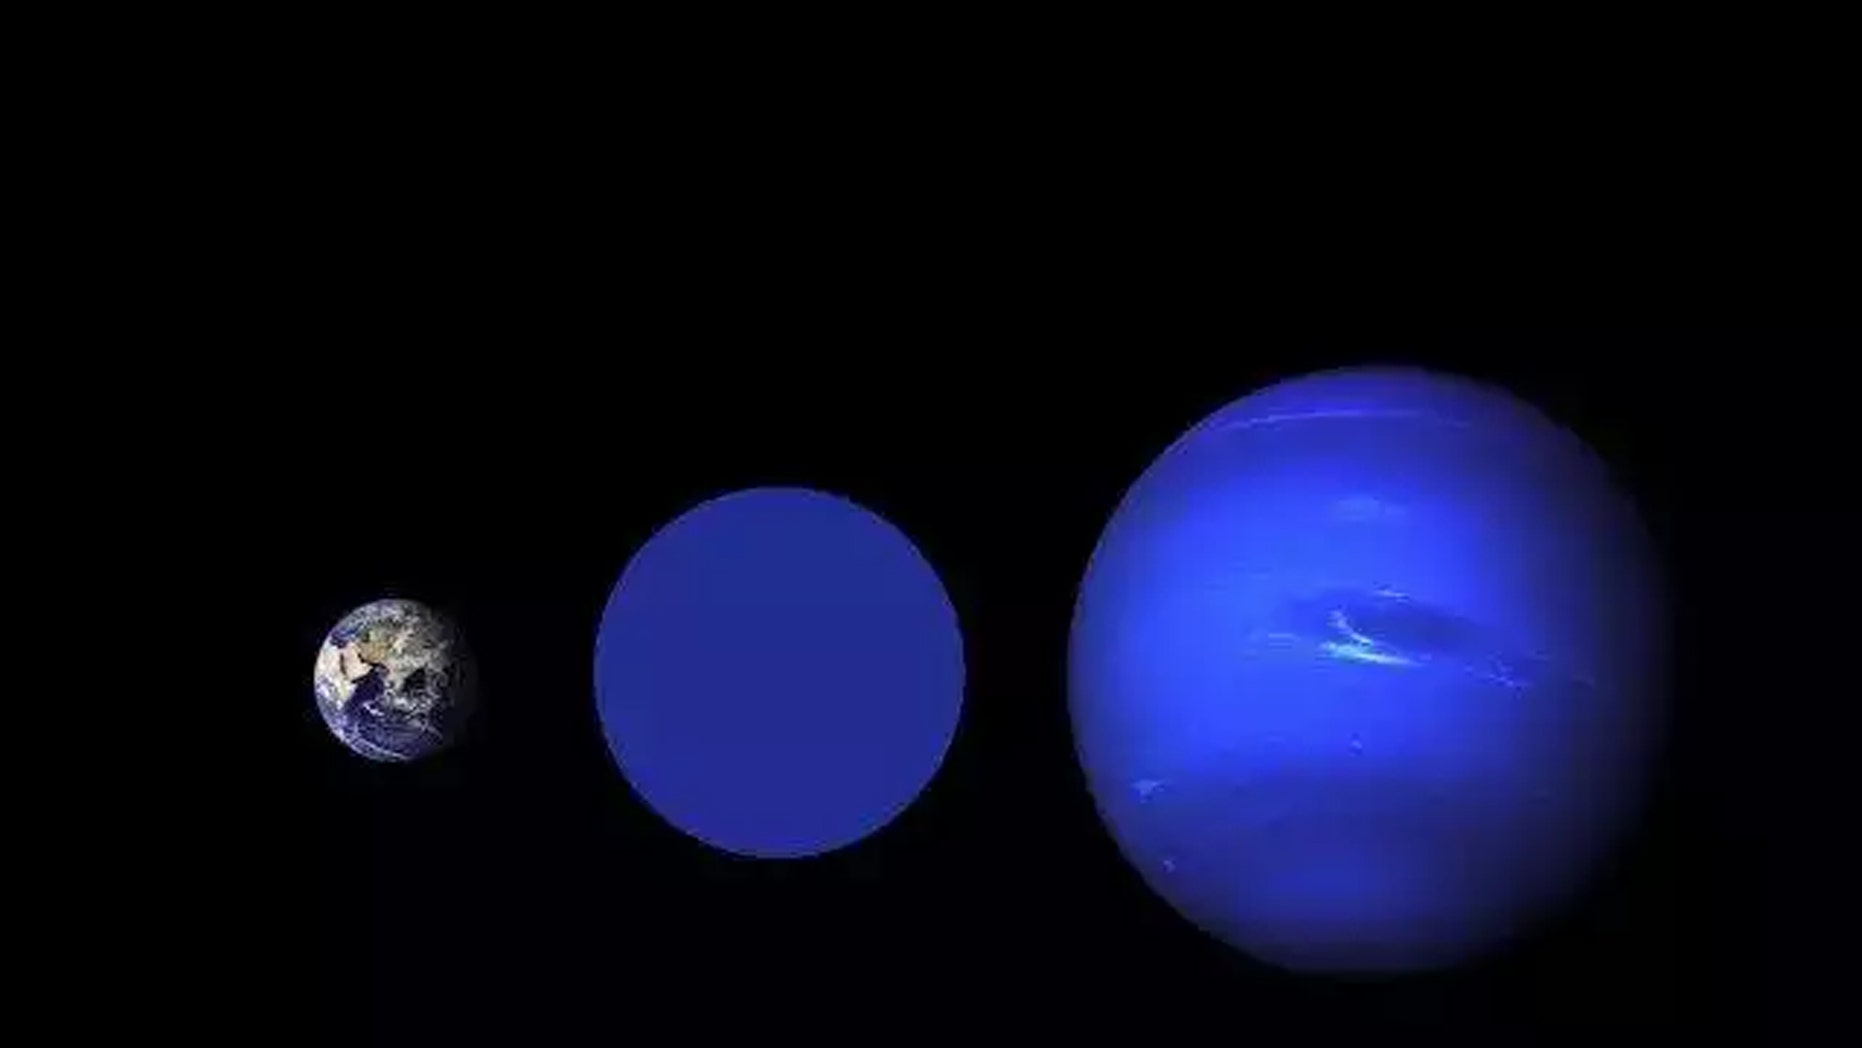 (Credit: NASA Goddard/Robert Simmon (Earth), NASA / JPL (Neptune))